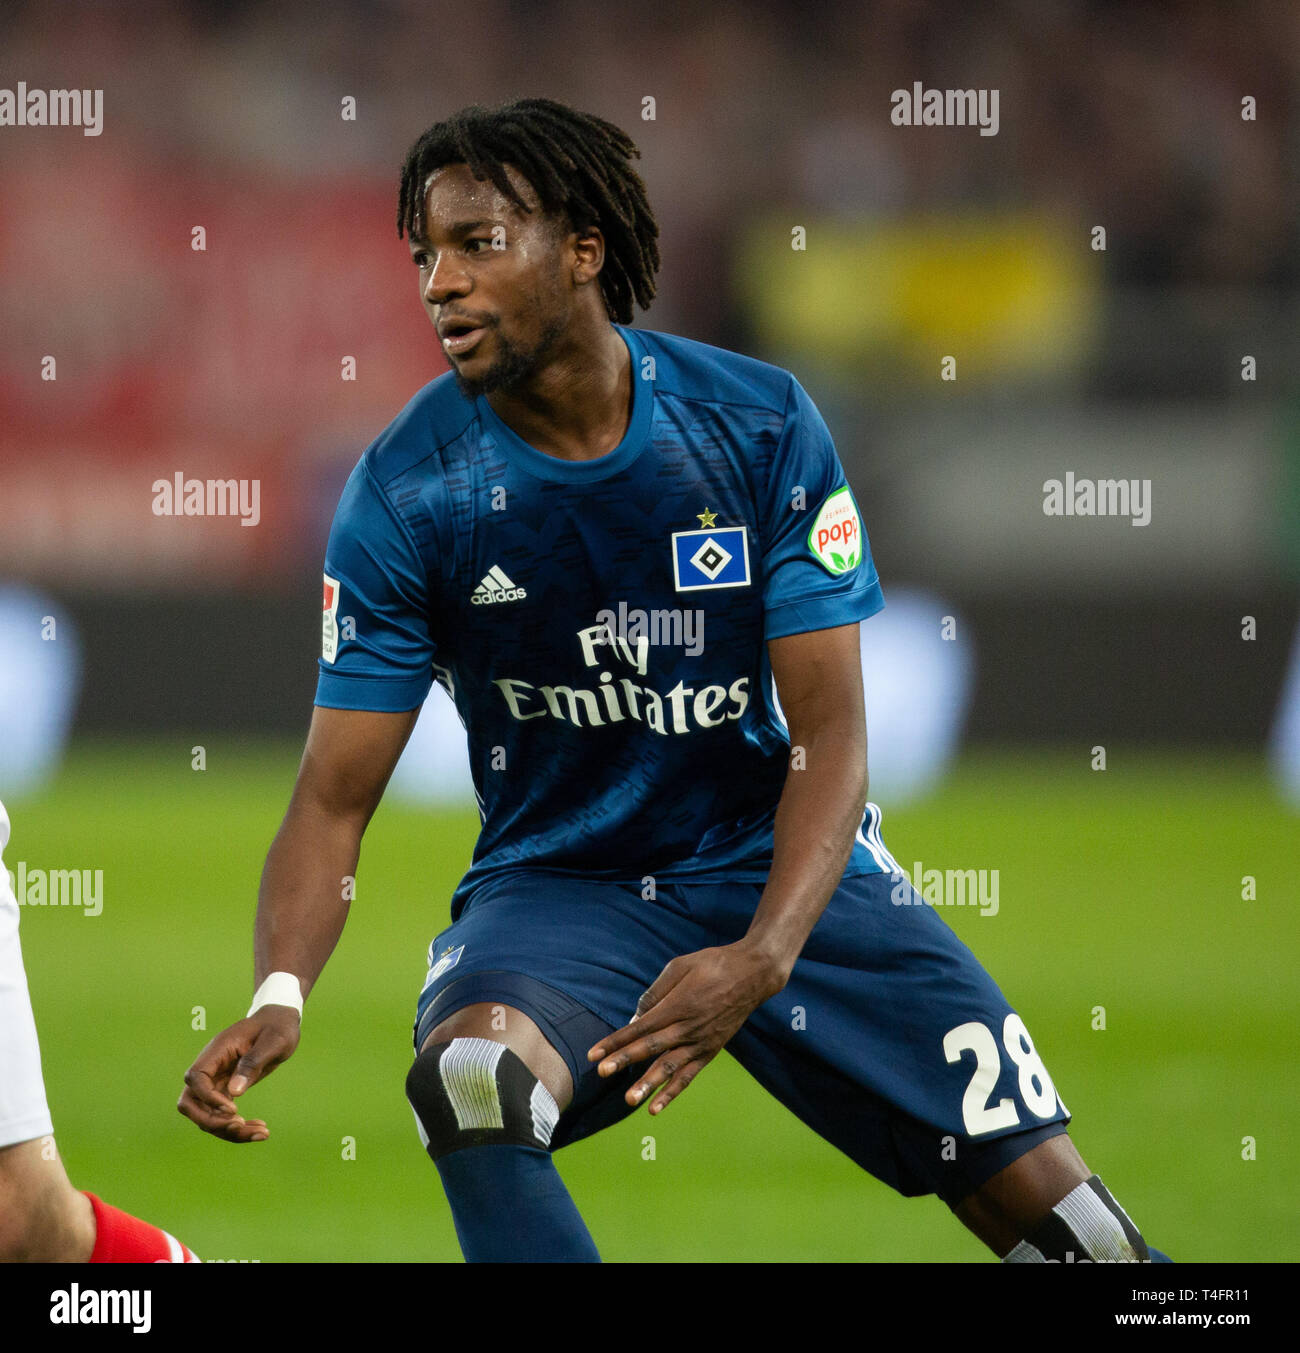 Cologne, Germany April 15 2019, football 2nd league, 1. FC Koeln vs. Hamburger SV: Gideon Jung (HSV) looks on. - Stock Image